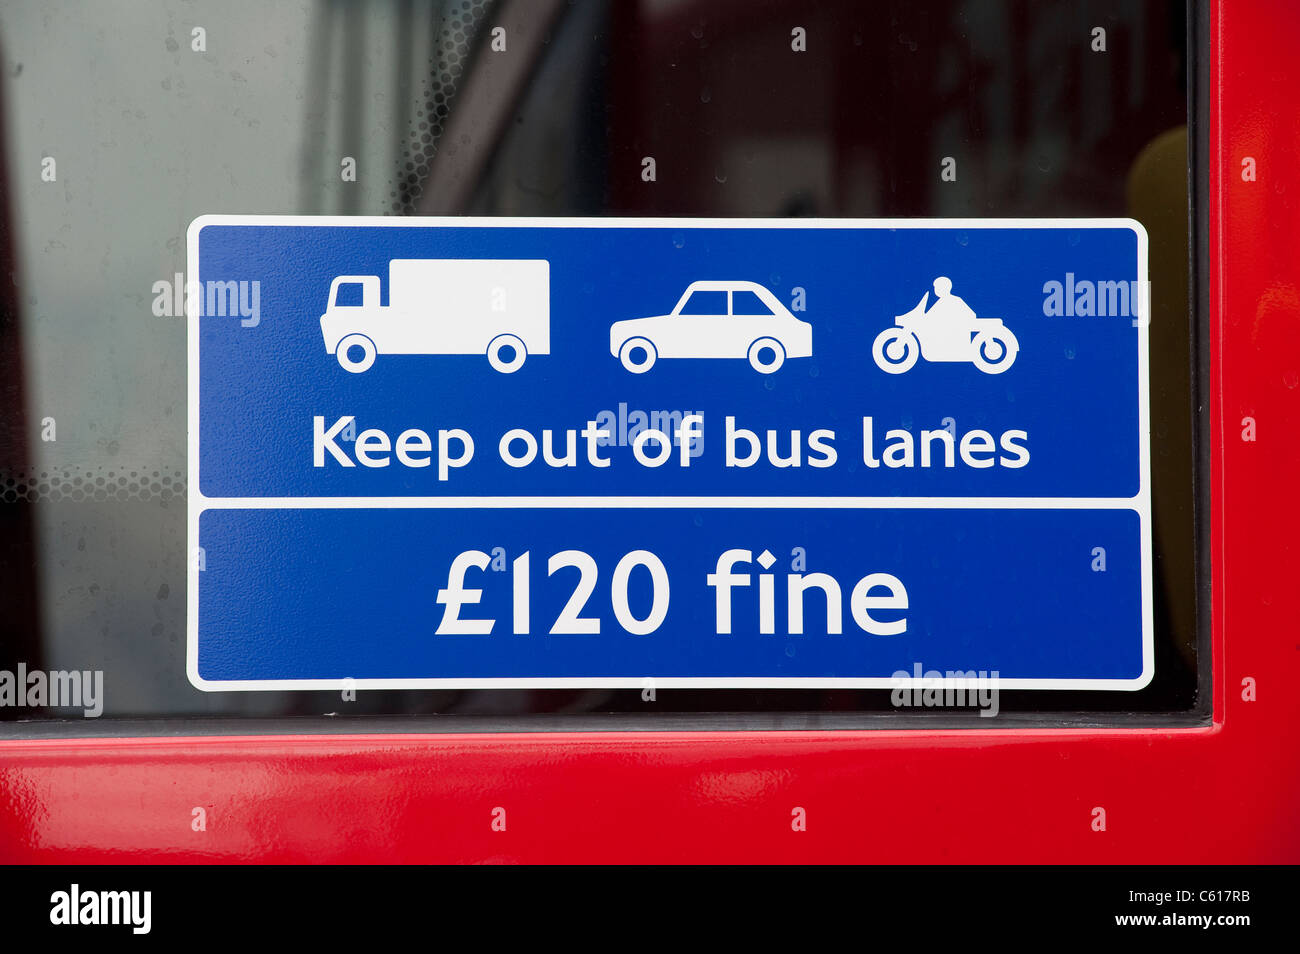 Sign in a bus window warning other traffic to stay out of bus lanes or face a fine. - Stock Image